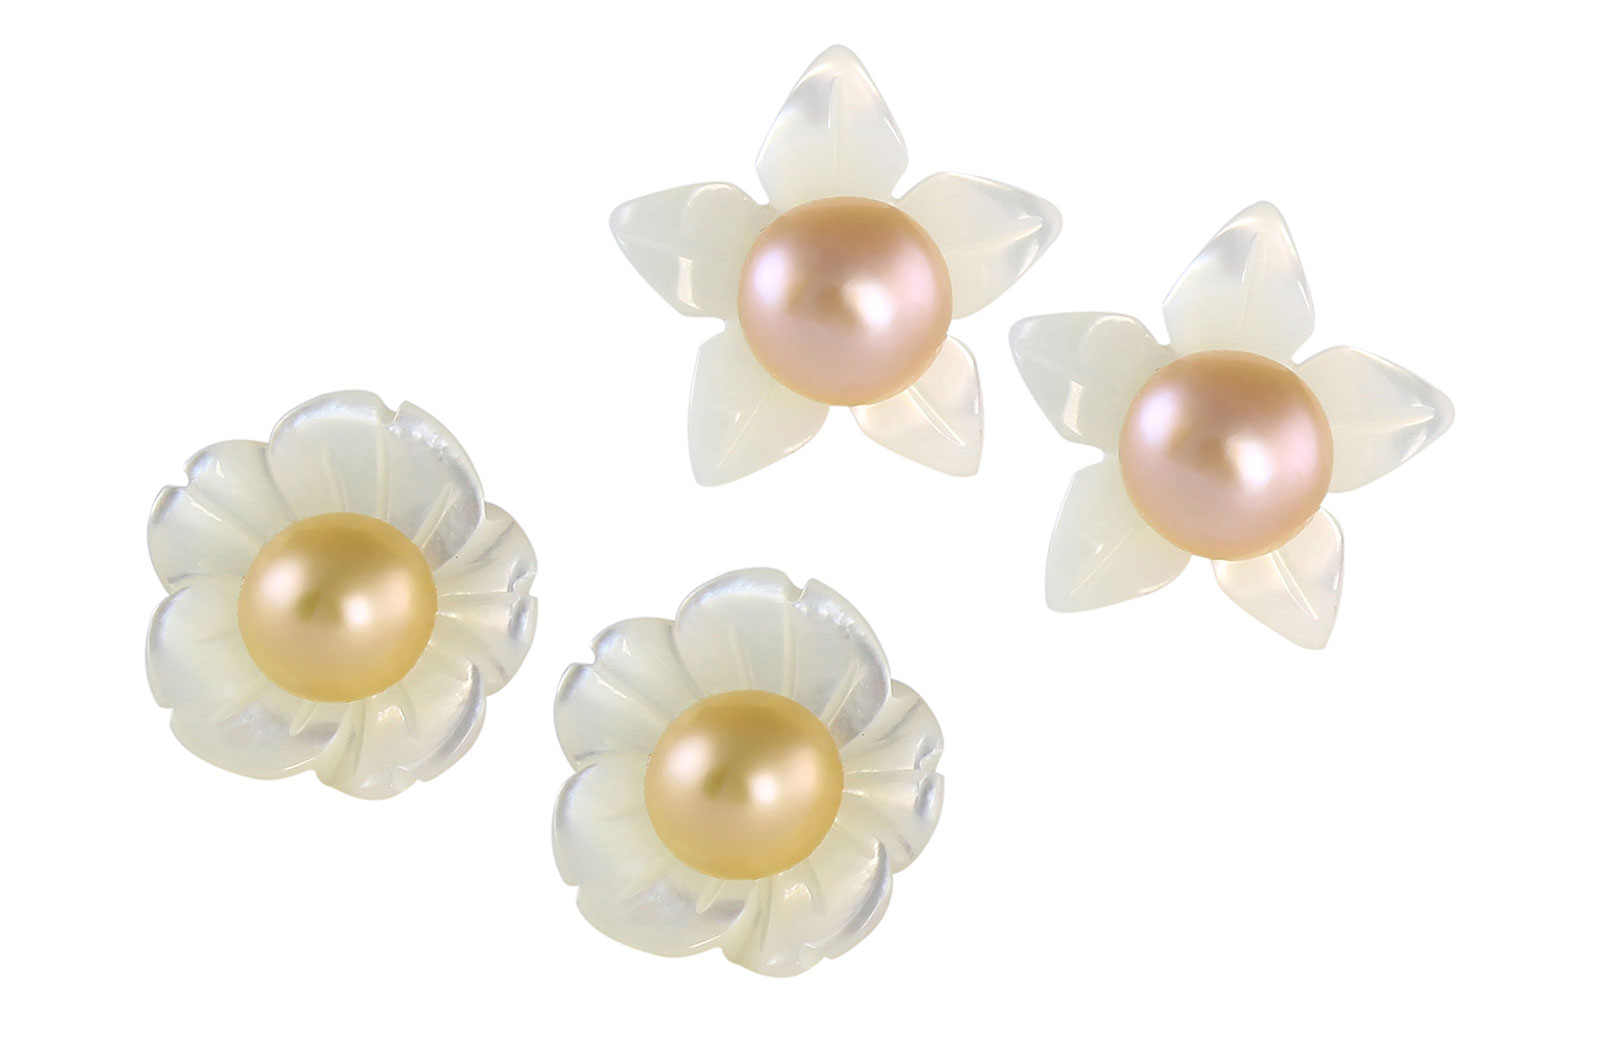 VP Jewels 18K  Yellow Gold,White Shell Flower  and 4-5MM Genuine Pink/Peach + Purple/Lavender Pearls Earrings